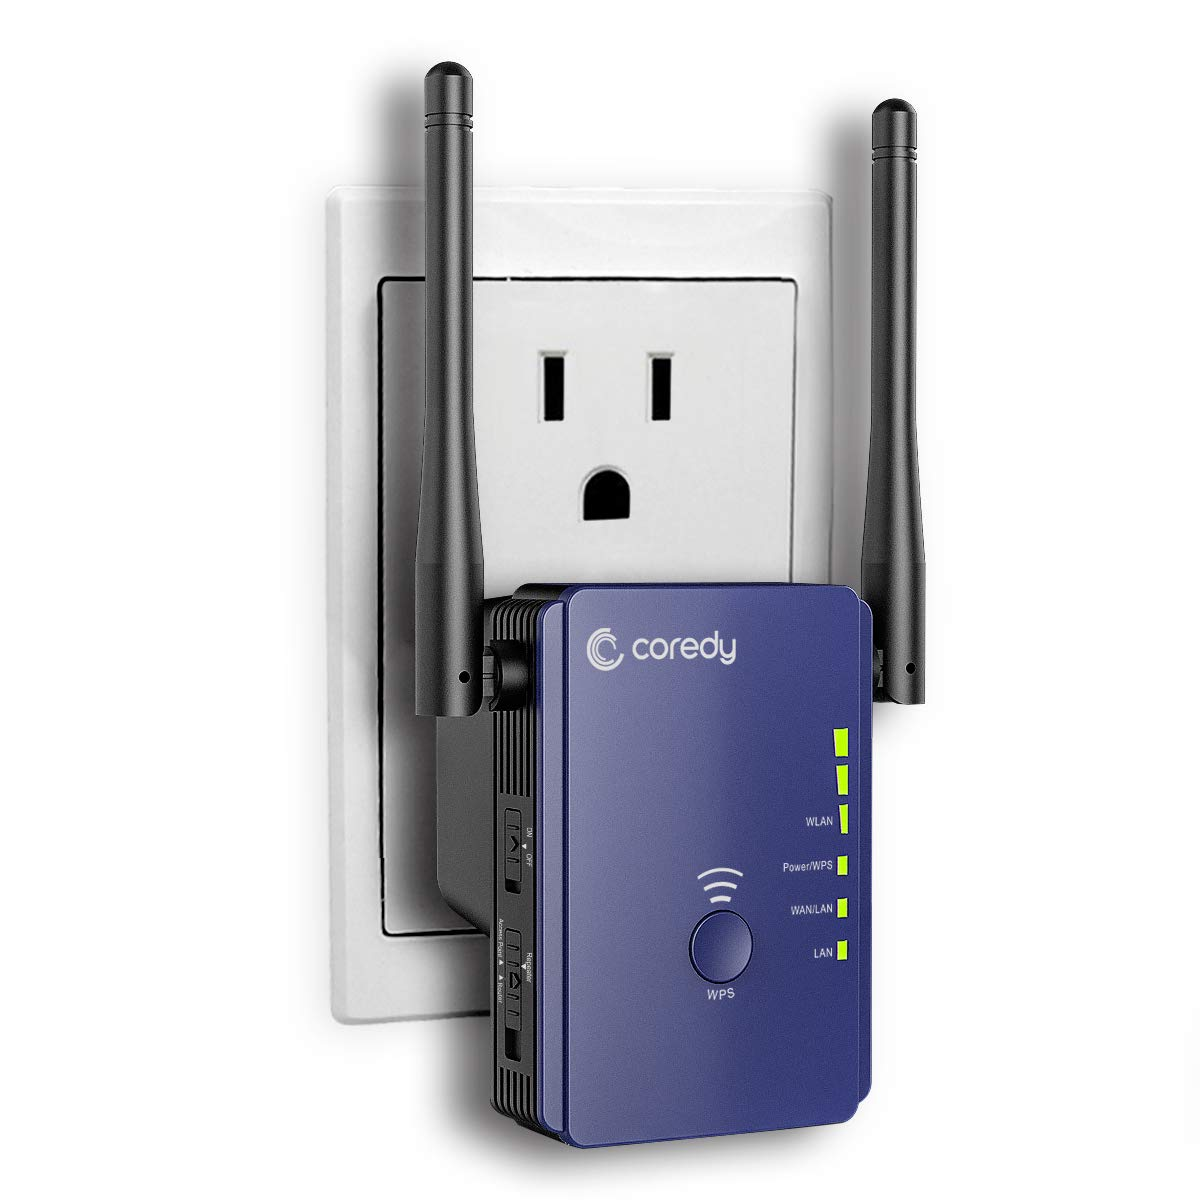 Coredy Upgraded 300Mbps Mini WiFi Extender/Wi-Fi Range Extender/Wireless Repeater/Internet Signal Booster with External Antennas, Compatible with Alexa, Extends WiFi to Smart Home & AlexaDevices